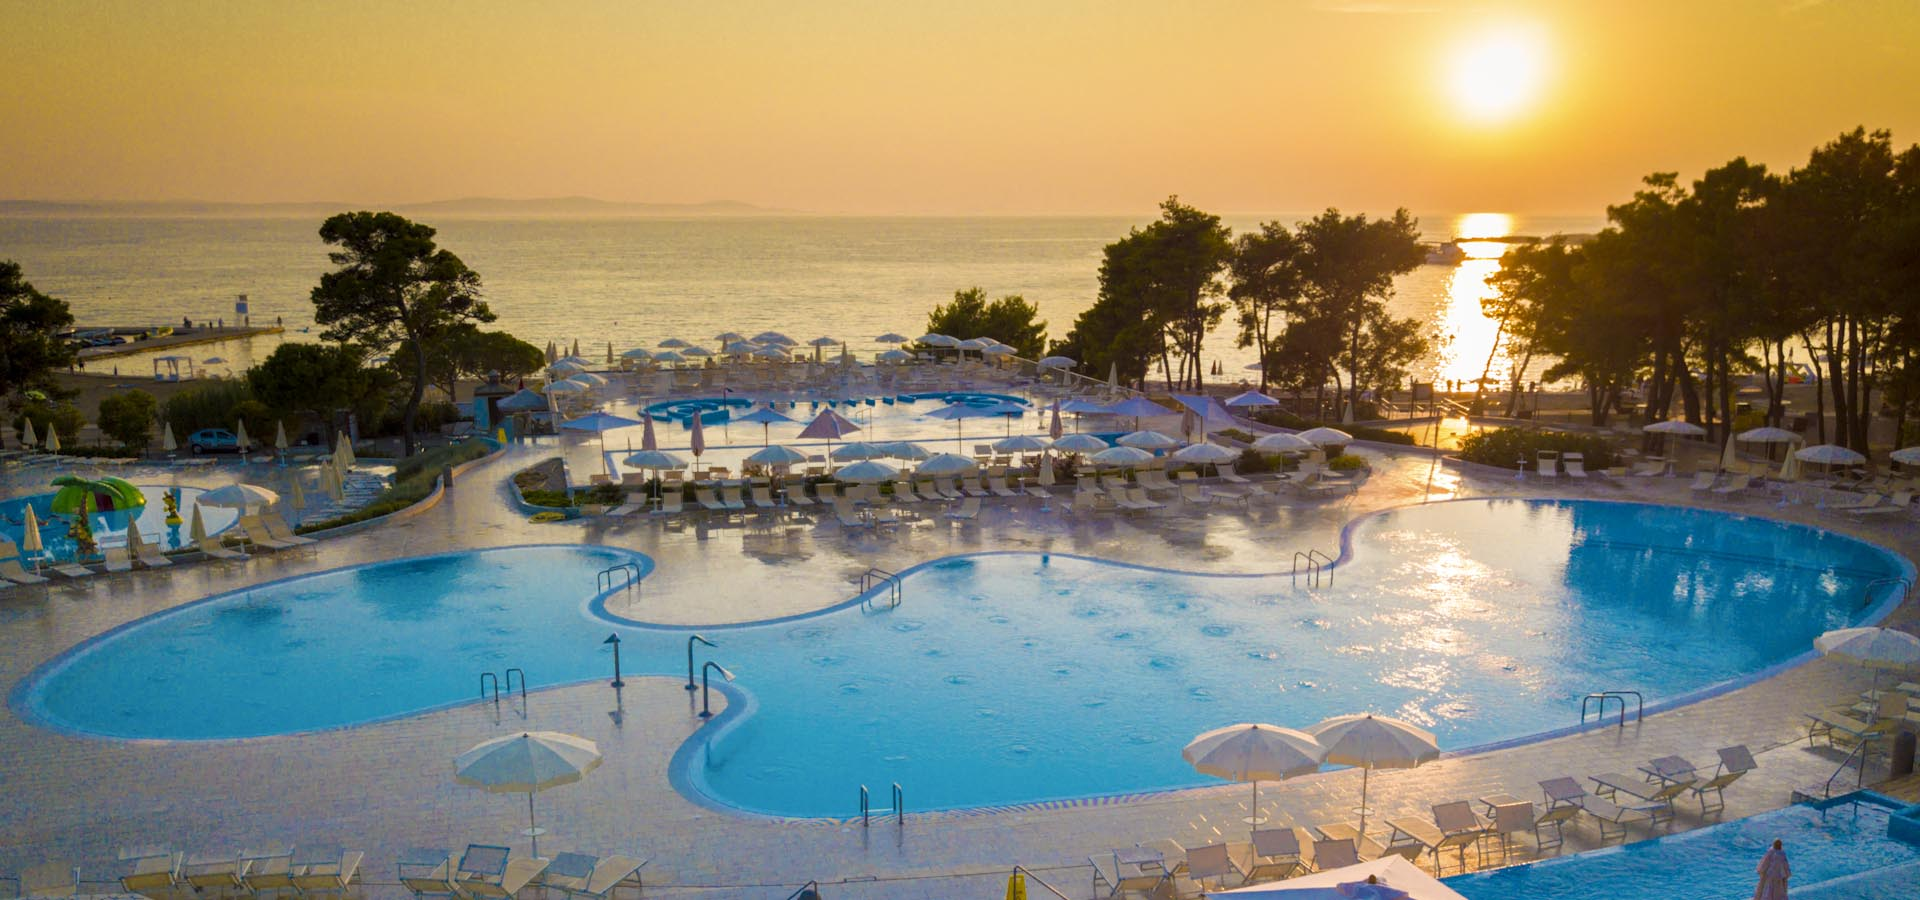 Zaton Holiday Resort - official webpage